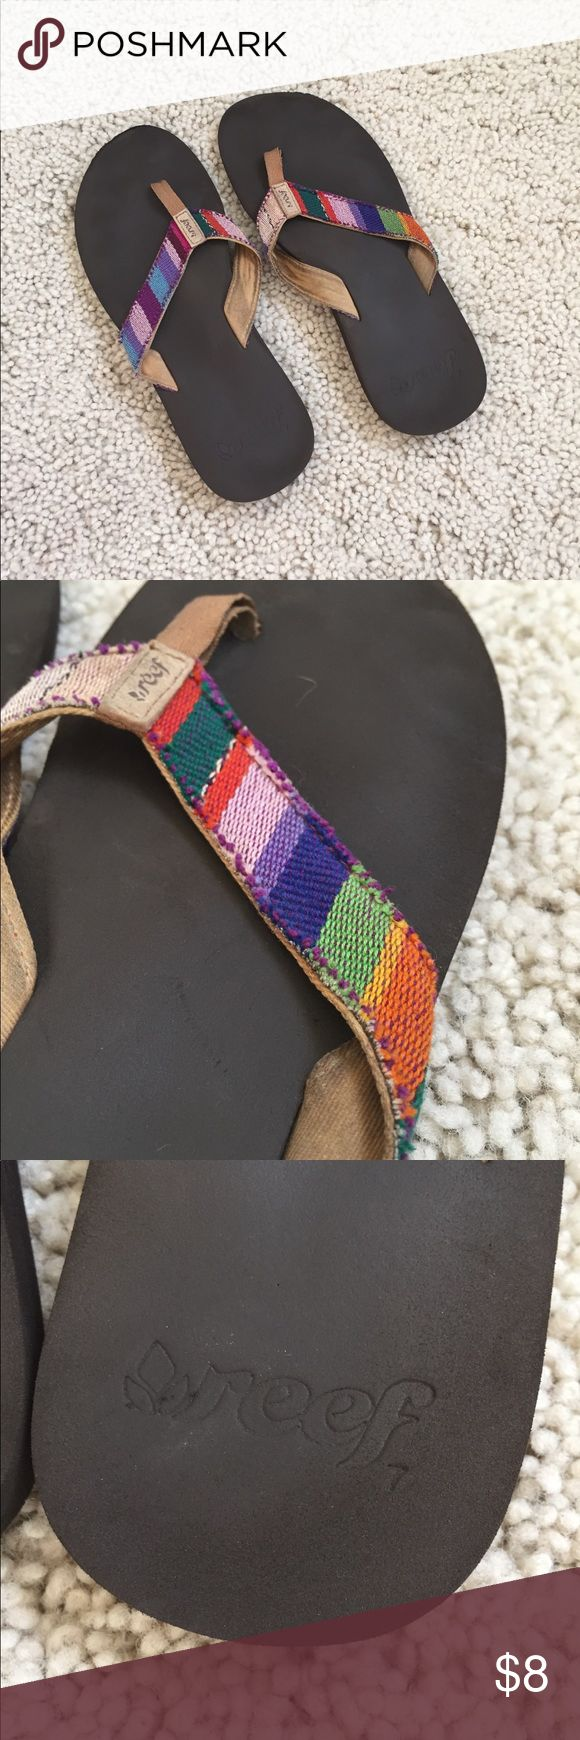 Multi colored Reef Flip Flops Fun multi colored flip flops for any summer occasion! Size 7 brand Reef in good condition. Reef Shoes